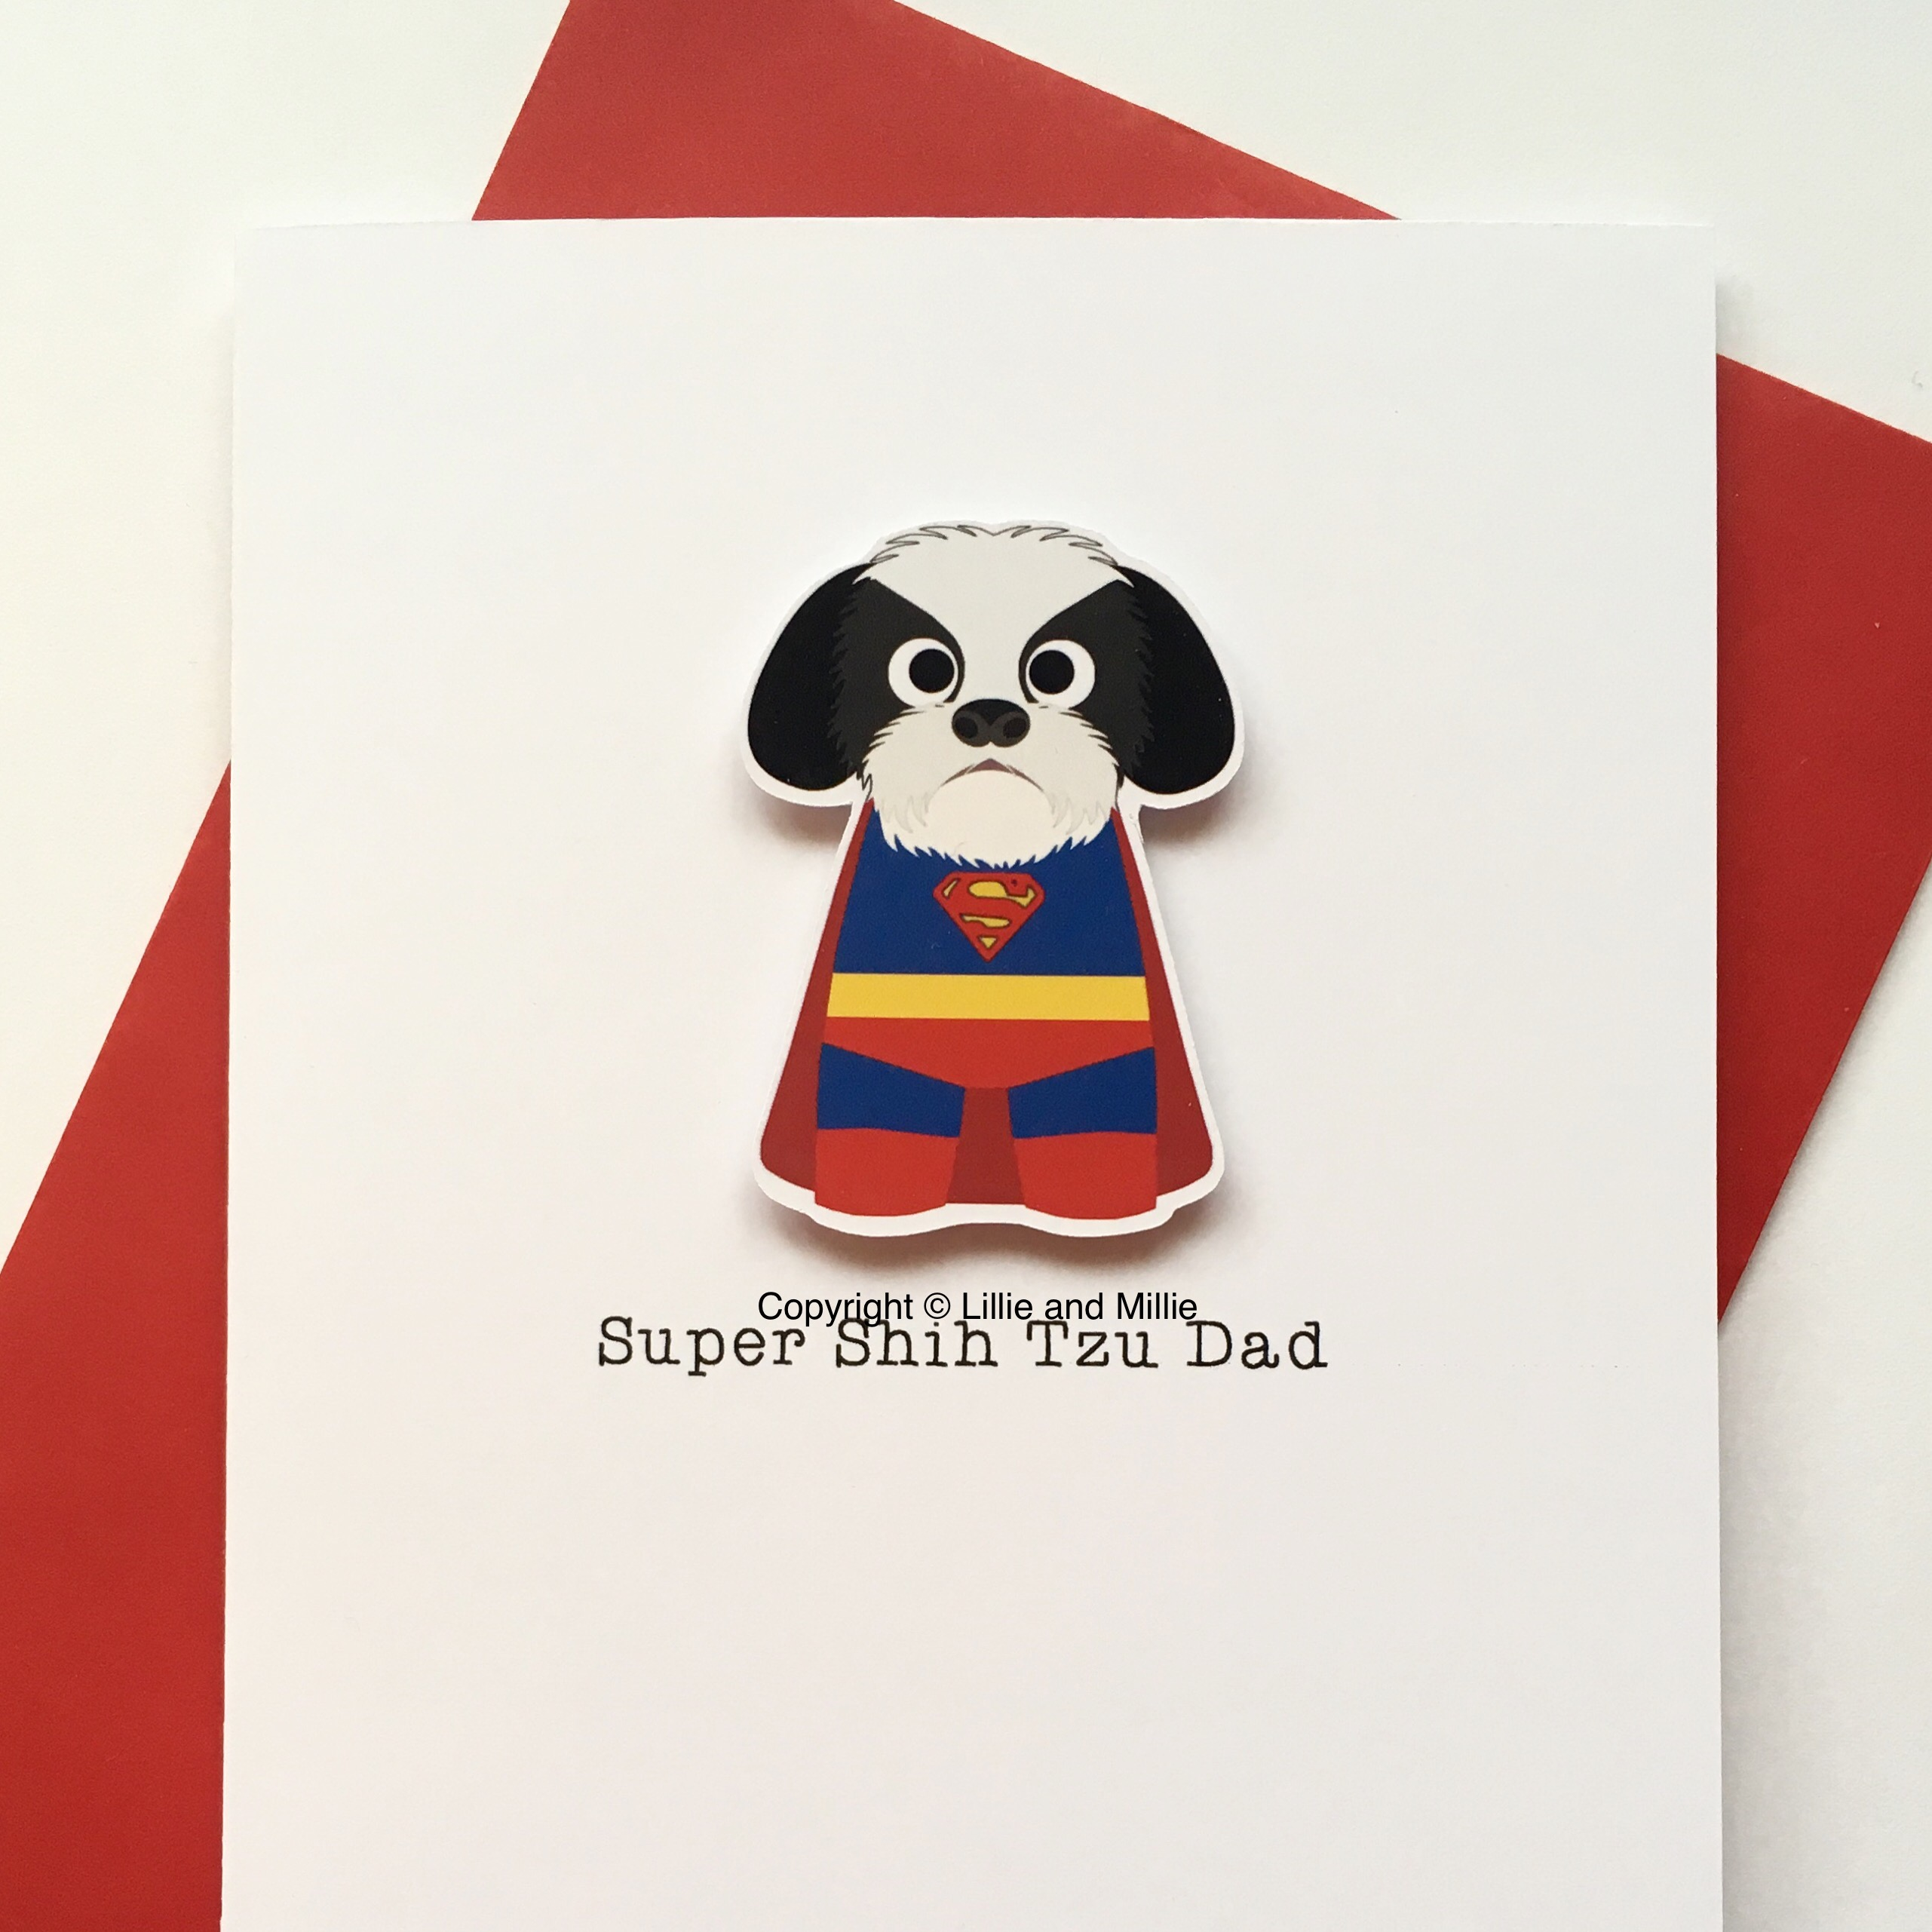 Cute and Cuddly Black and White Super Shih Tzu Dad Card